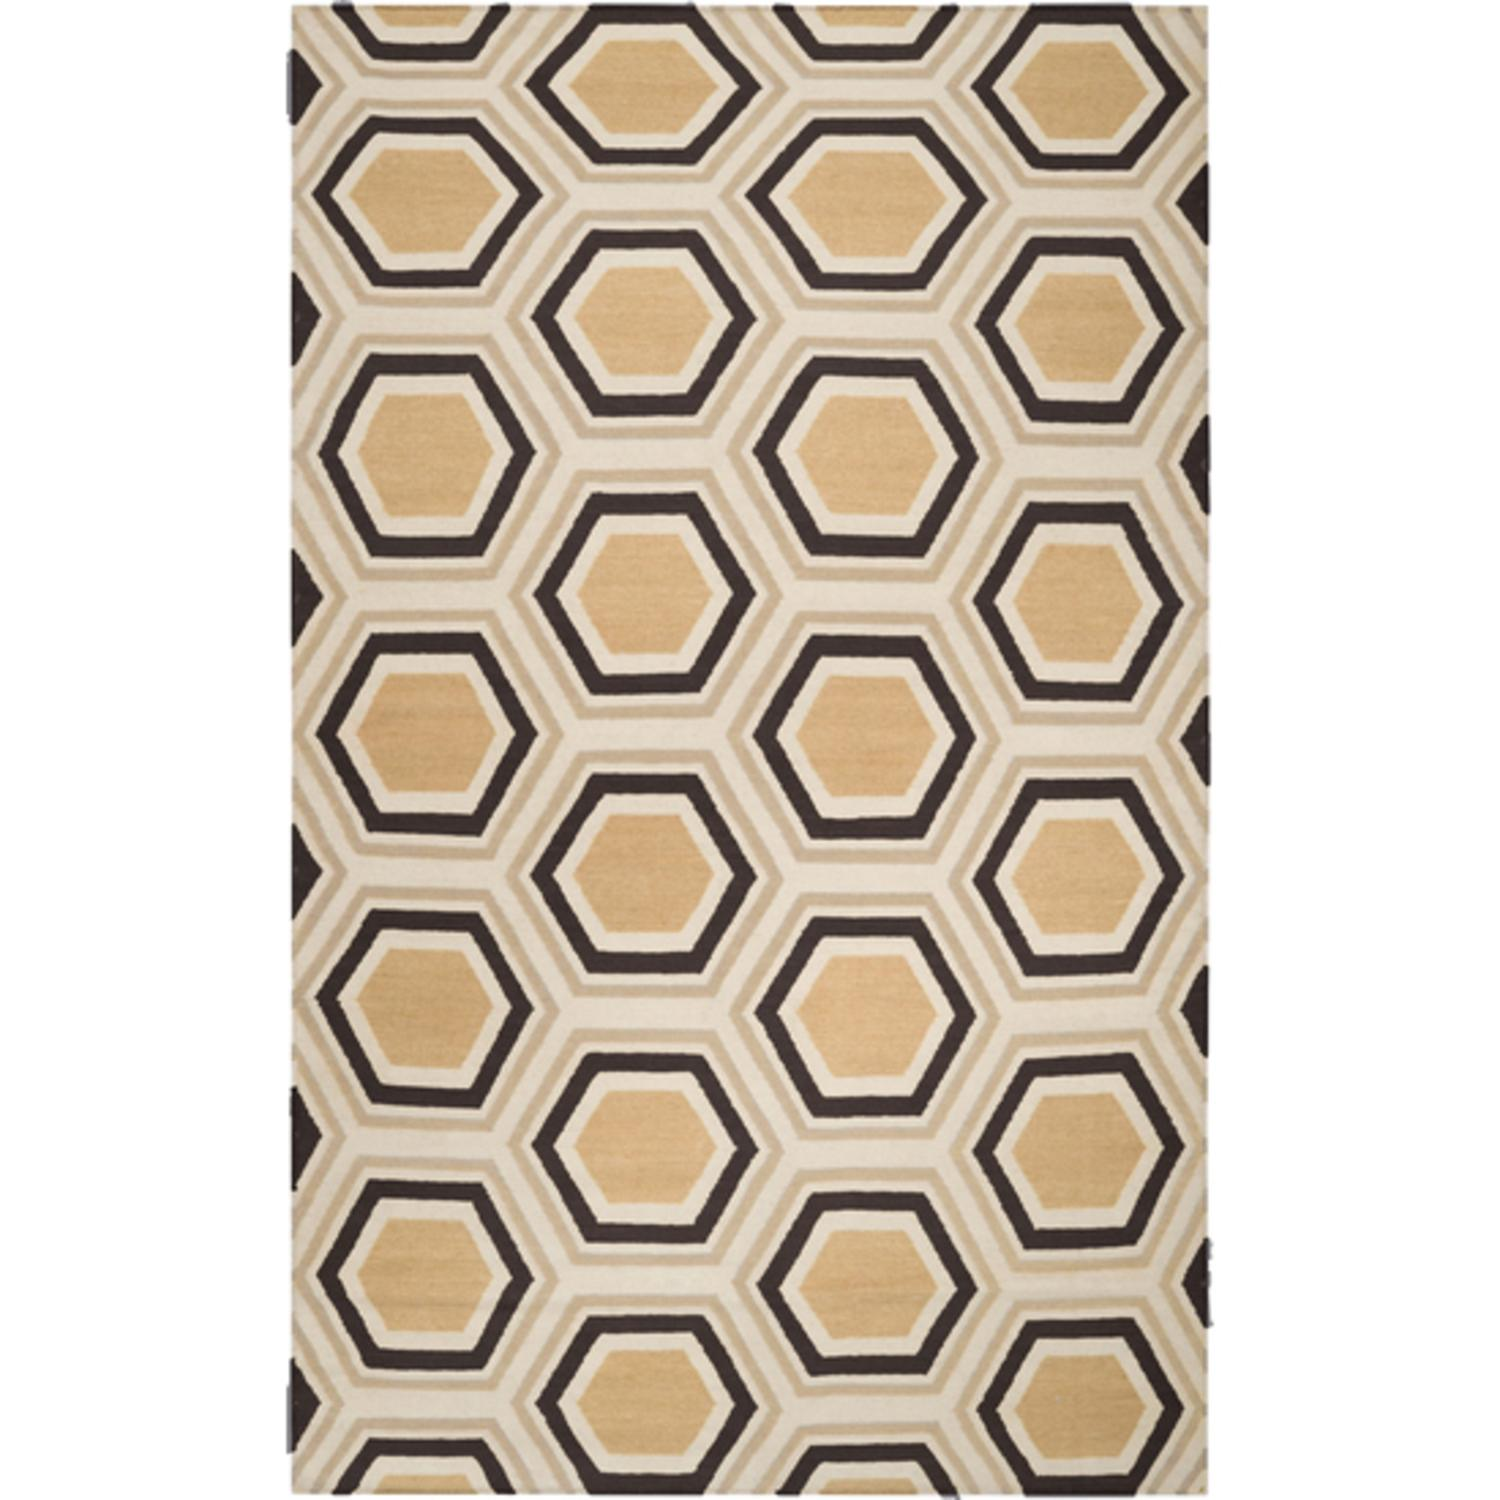 2.5' x 8' Retro Octagon Goldenrod and Coffee Brown Wool Area Throw Rug